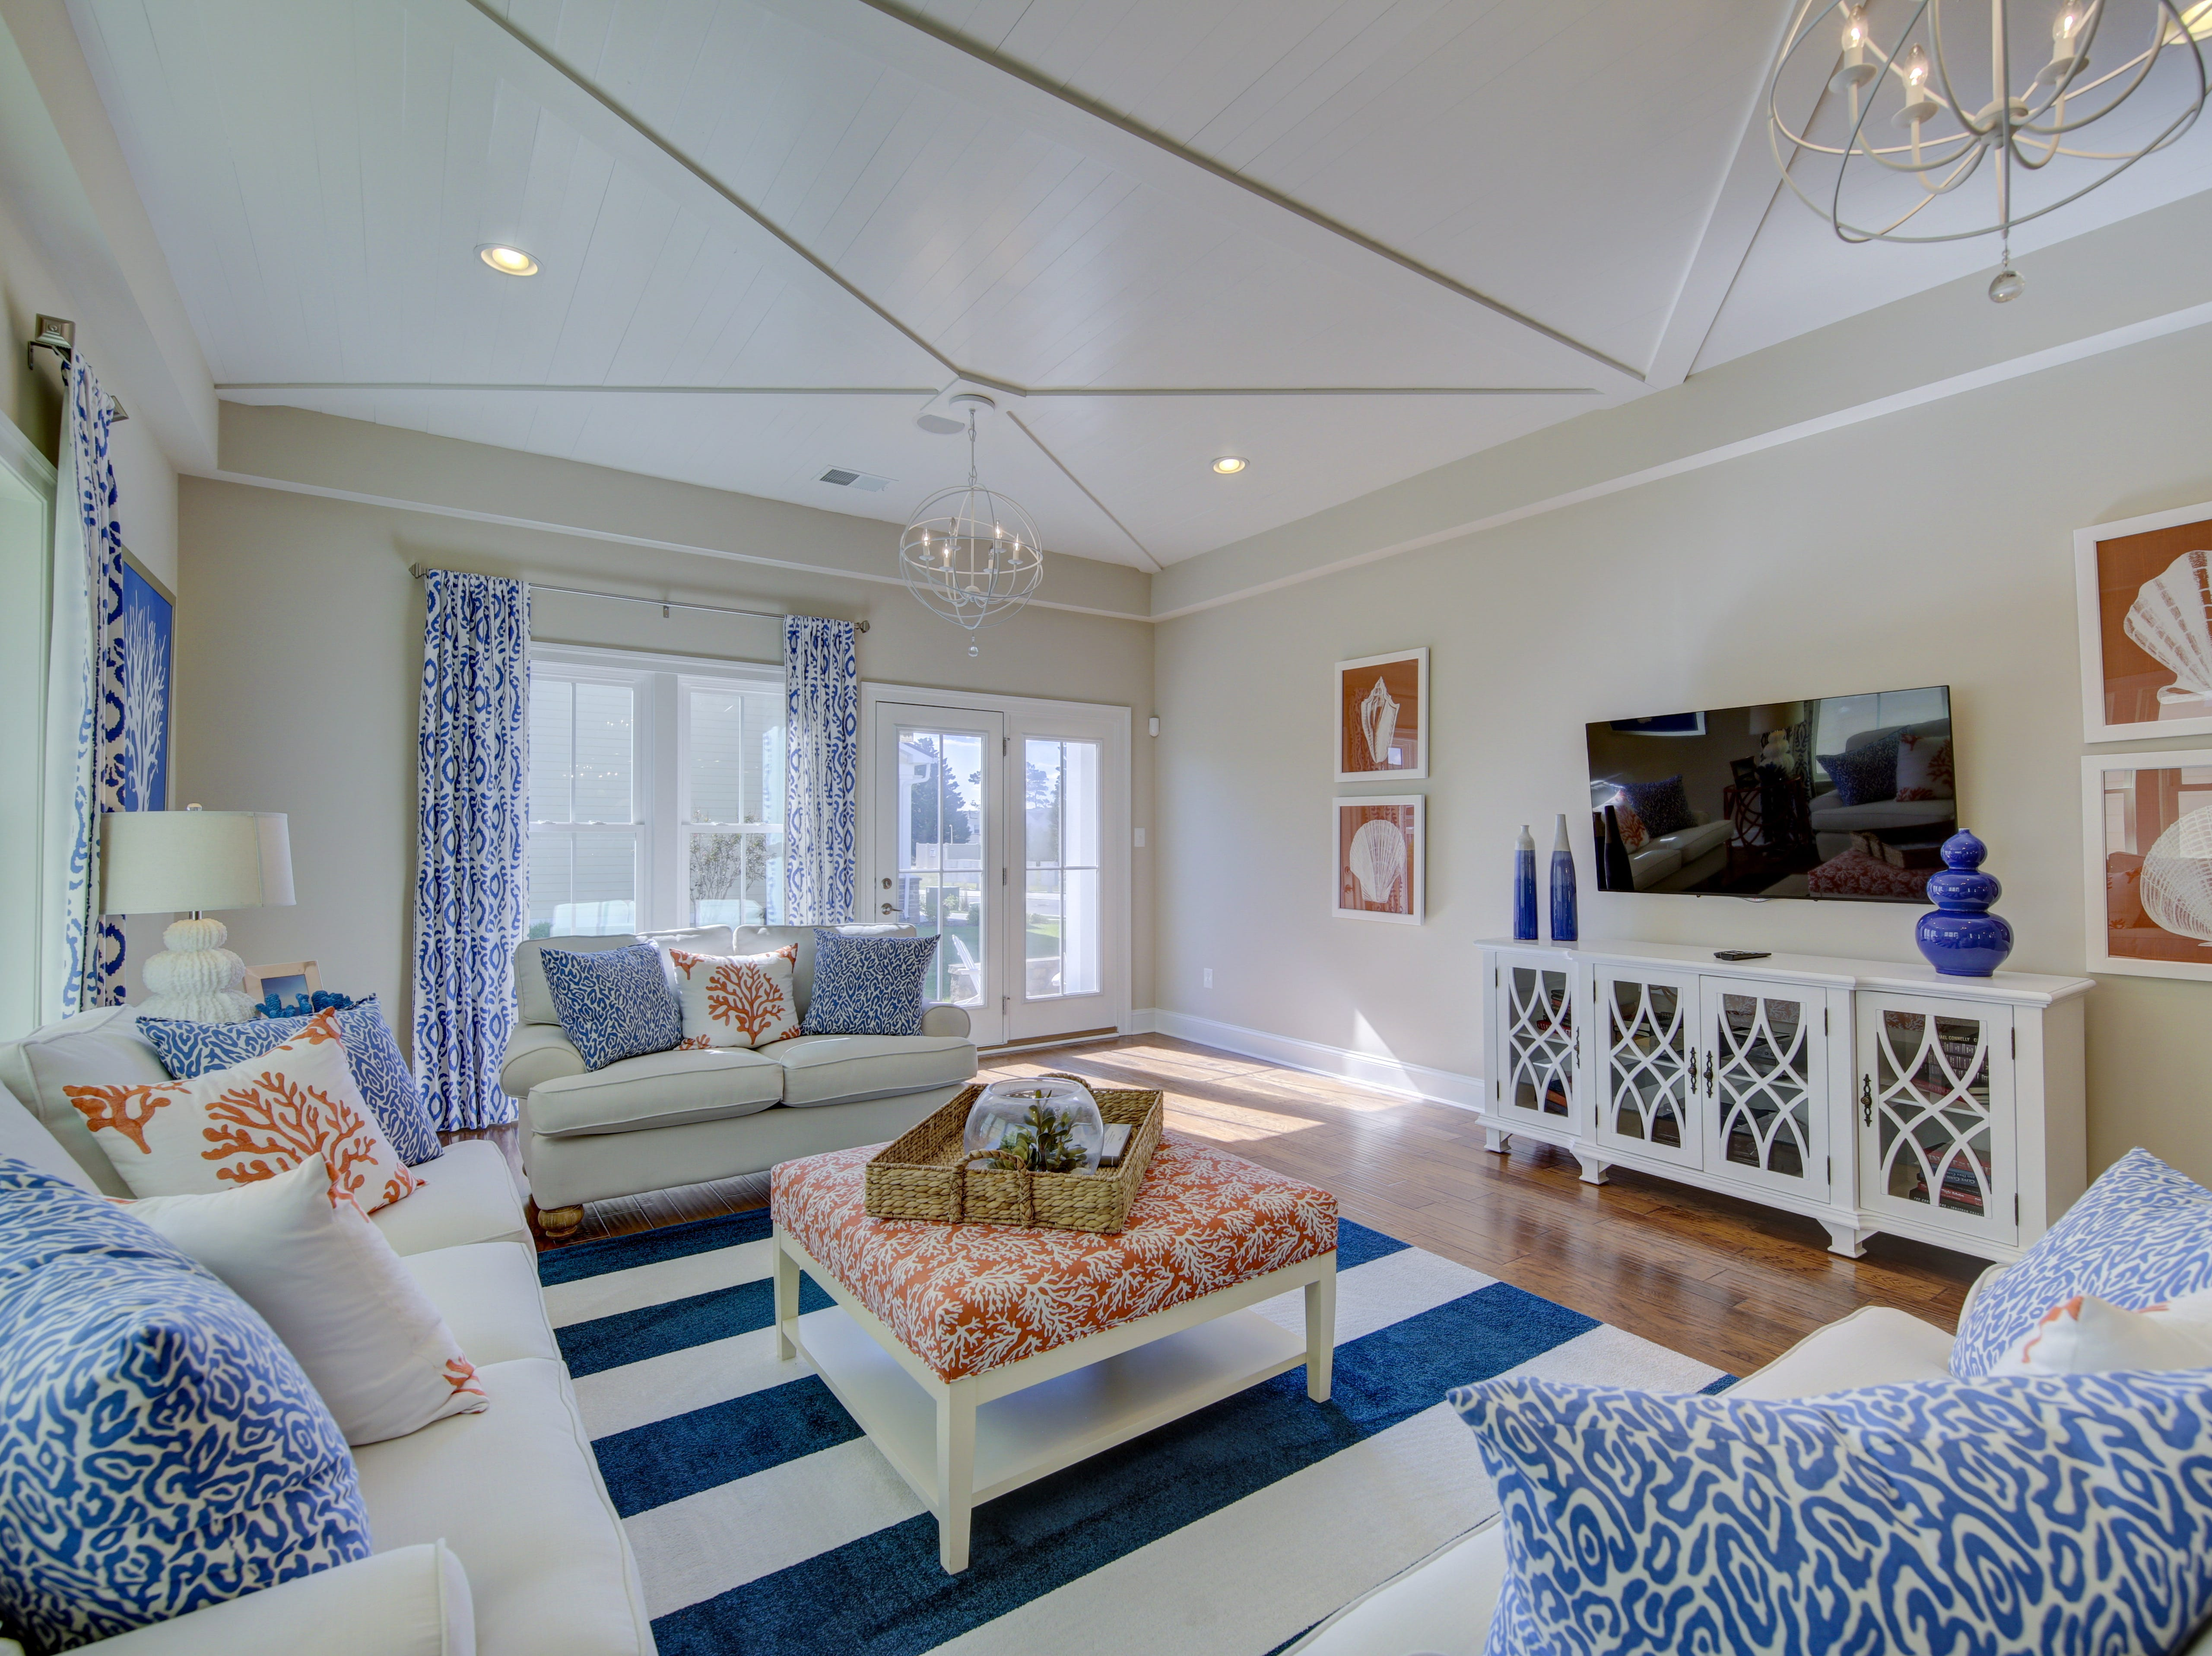 The living area in the model home in the Overlook in Selbyville has a custom ceiling with decorative moldings.